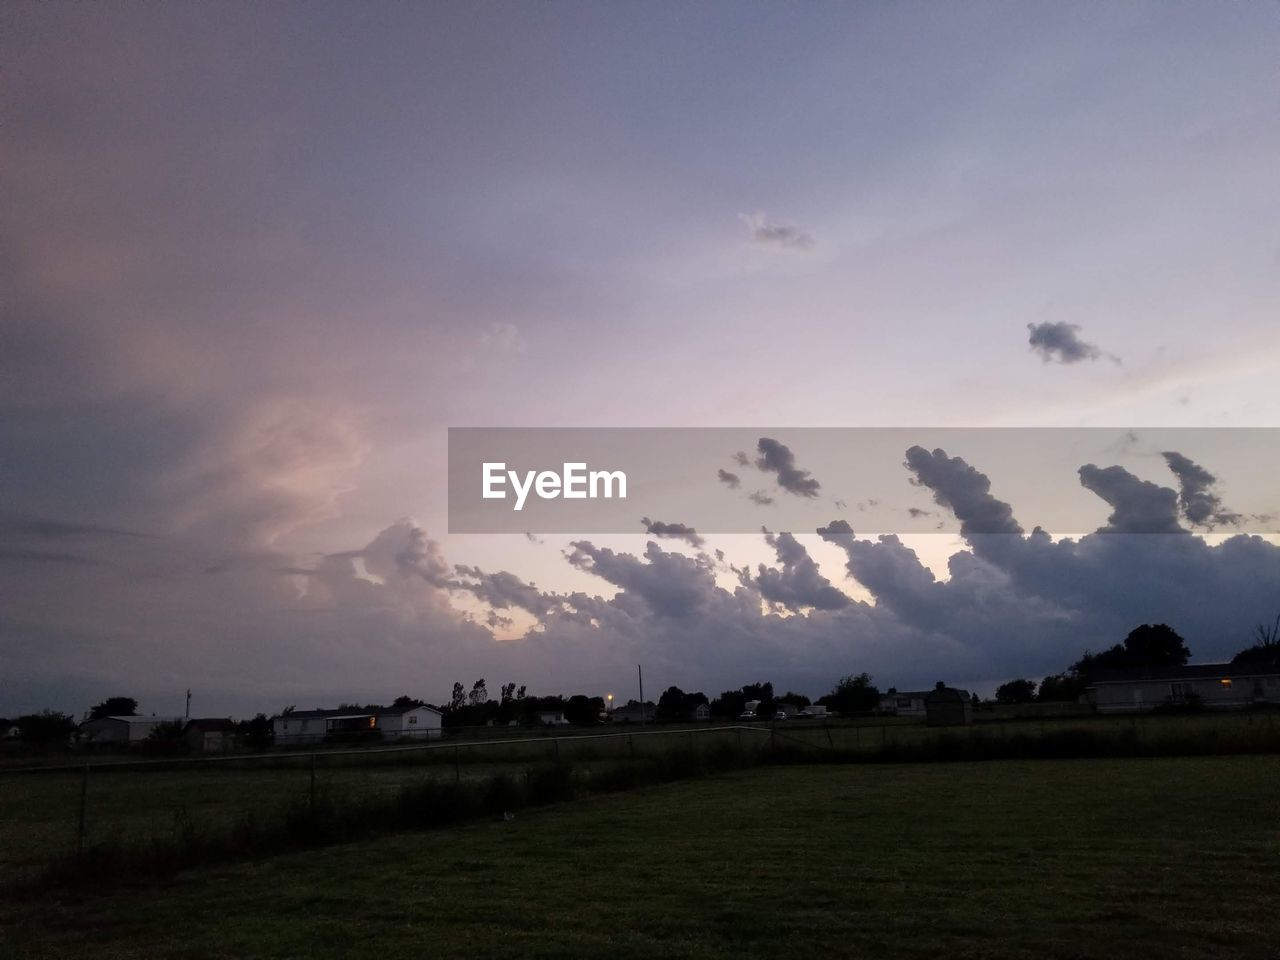 sky, cloud - sky, environment, landscape, scenics - nature, beauty in nature, tranquil scene, tranquility, nature, field, sunset, no people, plant, land, rural scene, tree, outdoors, agriculture, non-urban scene, grass